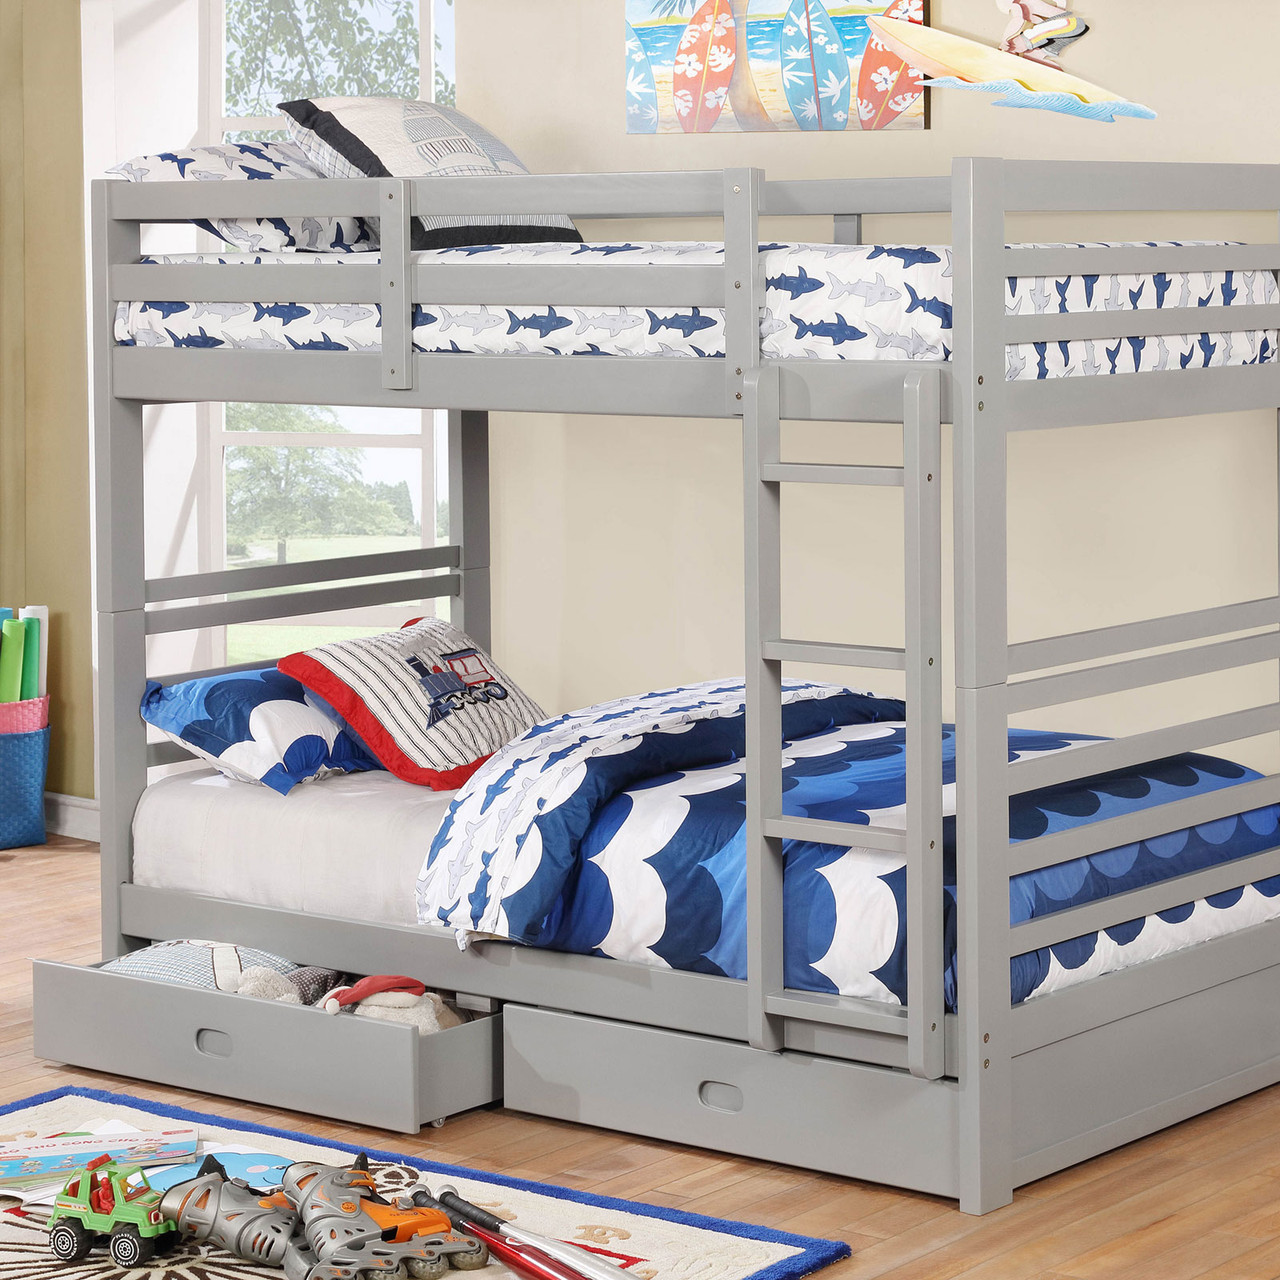 Picture of: The California Iv Transitional Twin Twin Bunk Bed In Grey Available At Furniture Express Hi Serving Honolulu Hi And Surrounding Areas